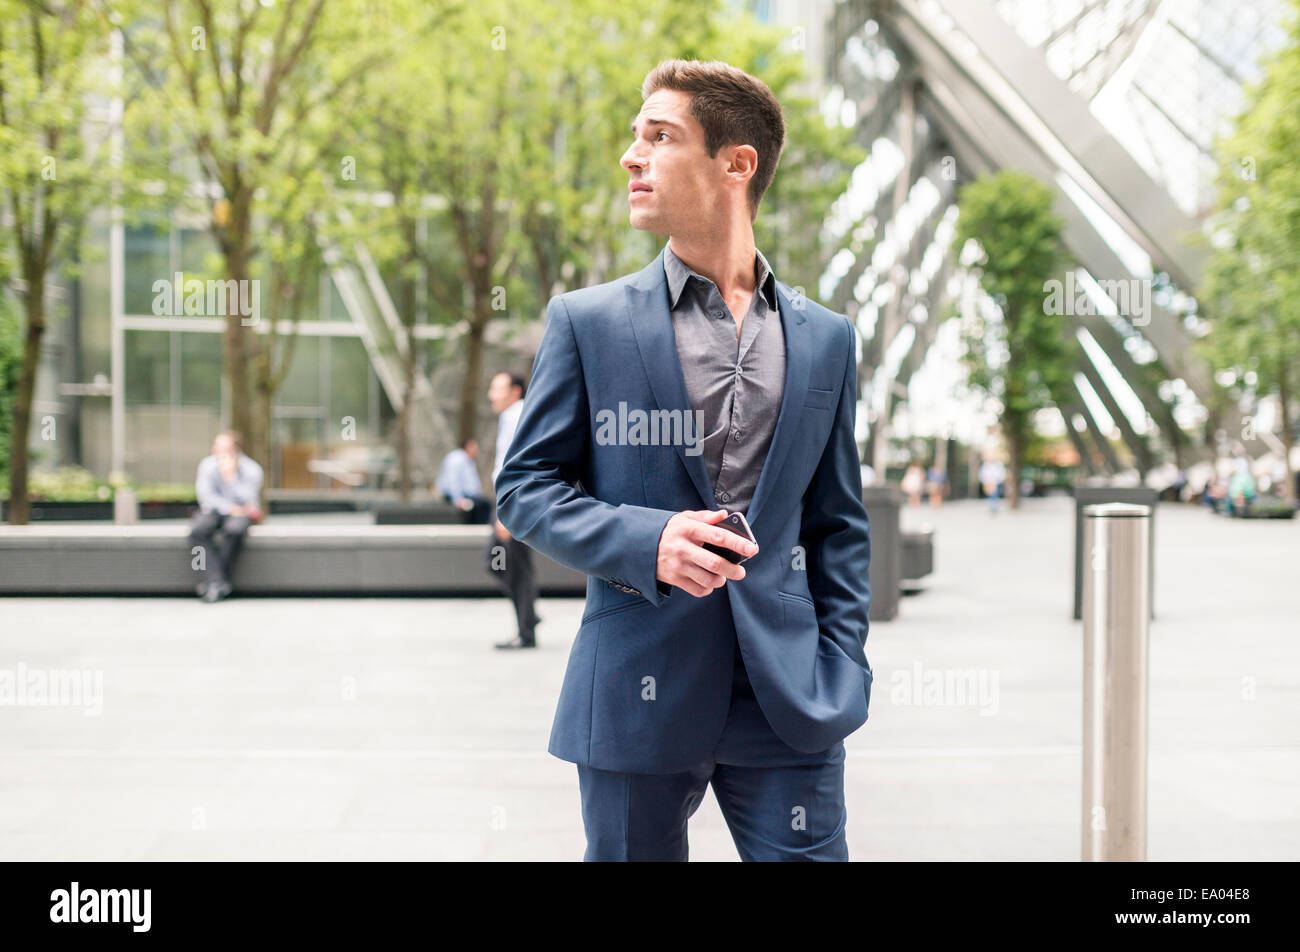 Worried looking young businessman at Broadgate Tower, London, UK - Stock Image